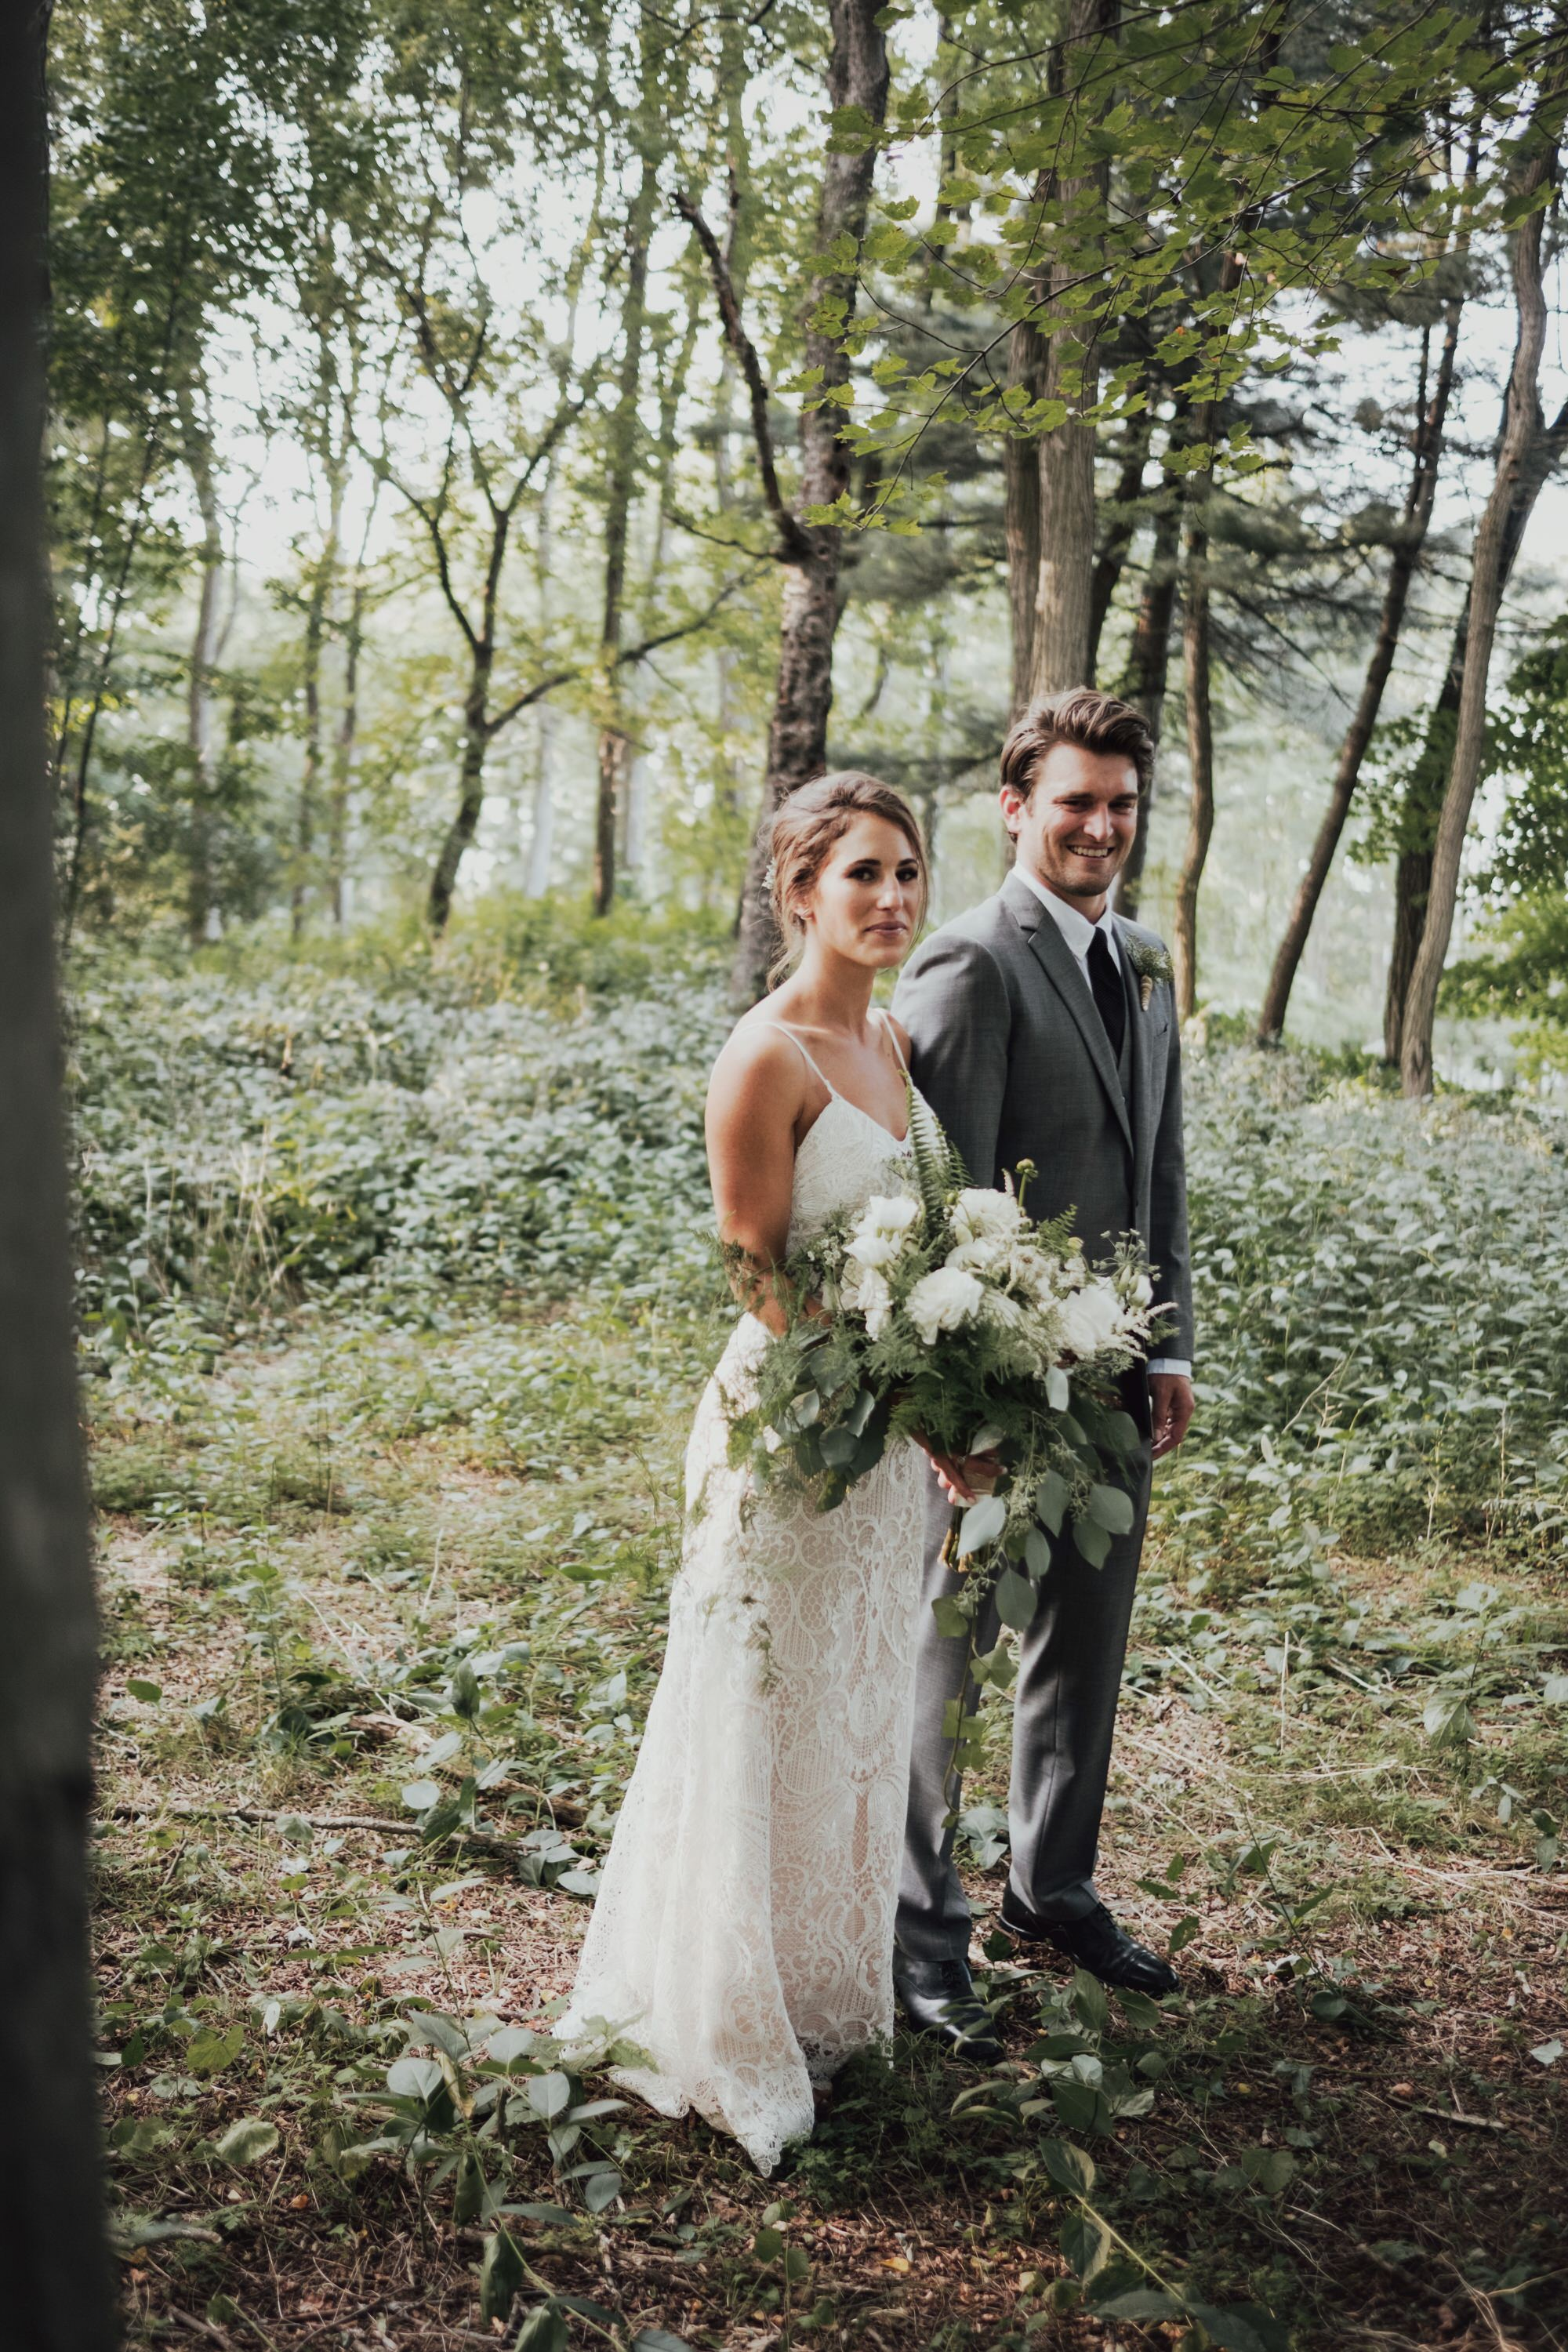 photo ideas for the bride and groom